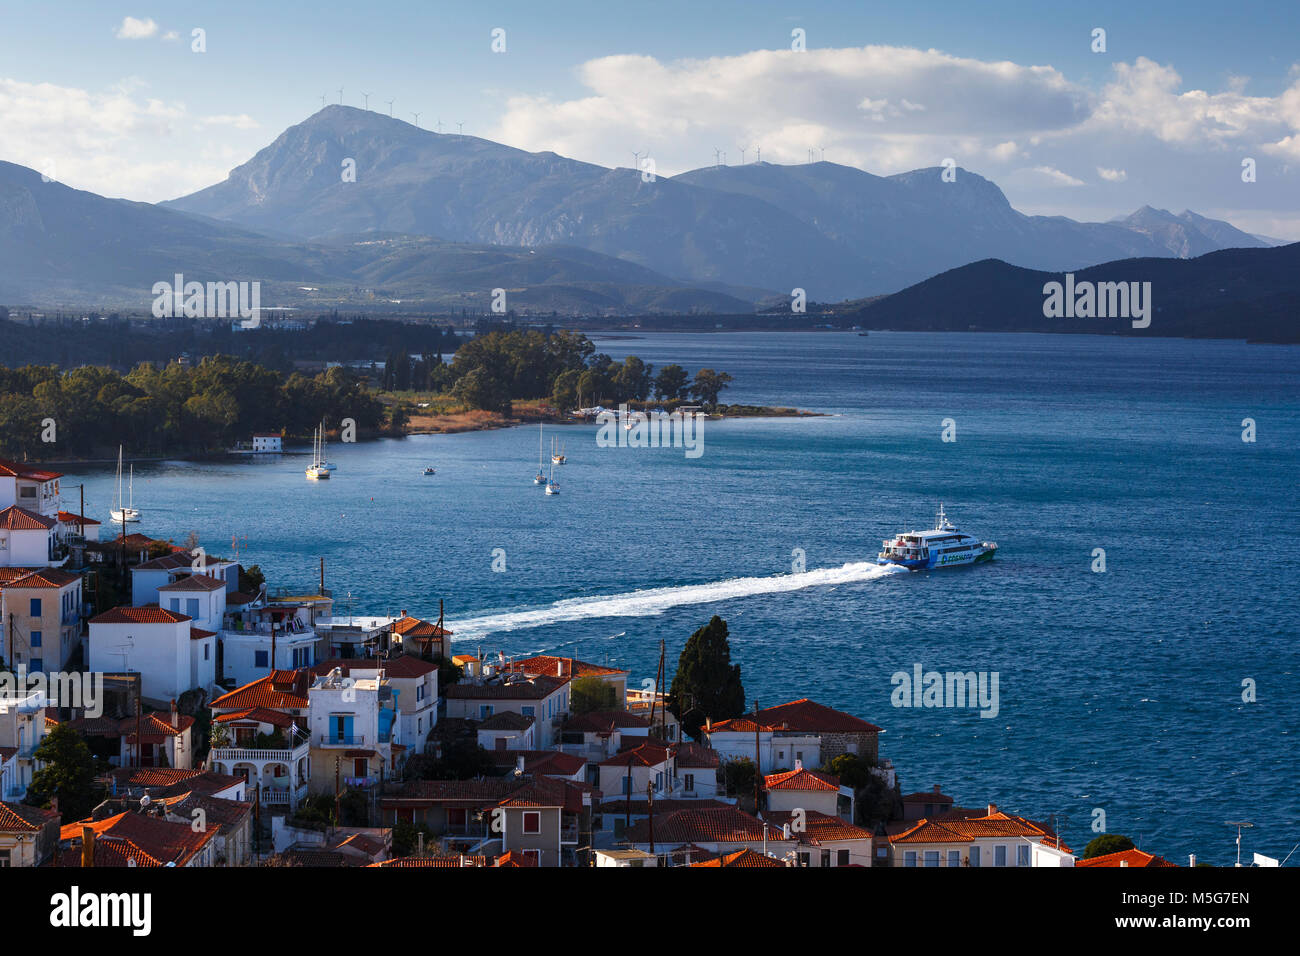 View of the Chora village of Poros island from a nearby hill, Greece. - Stock Image